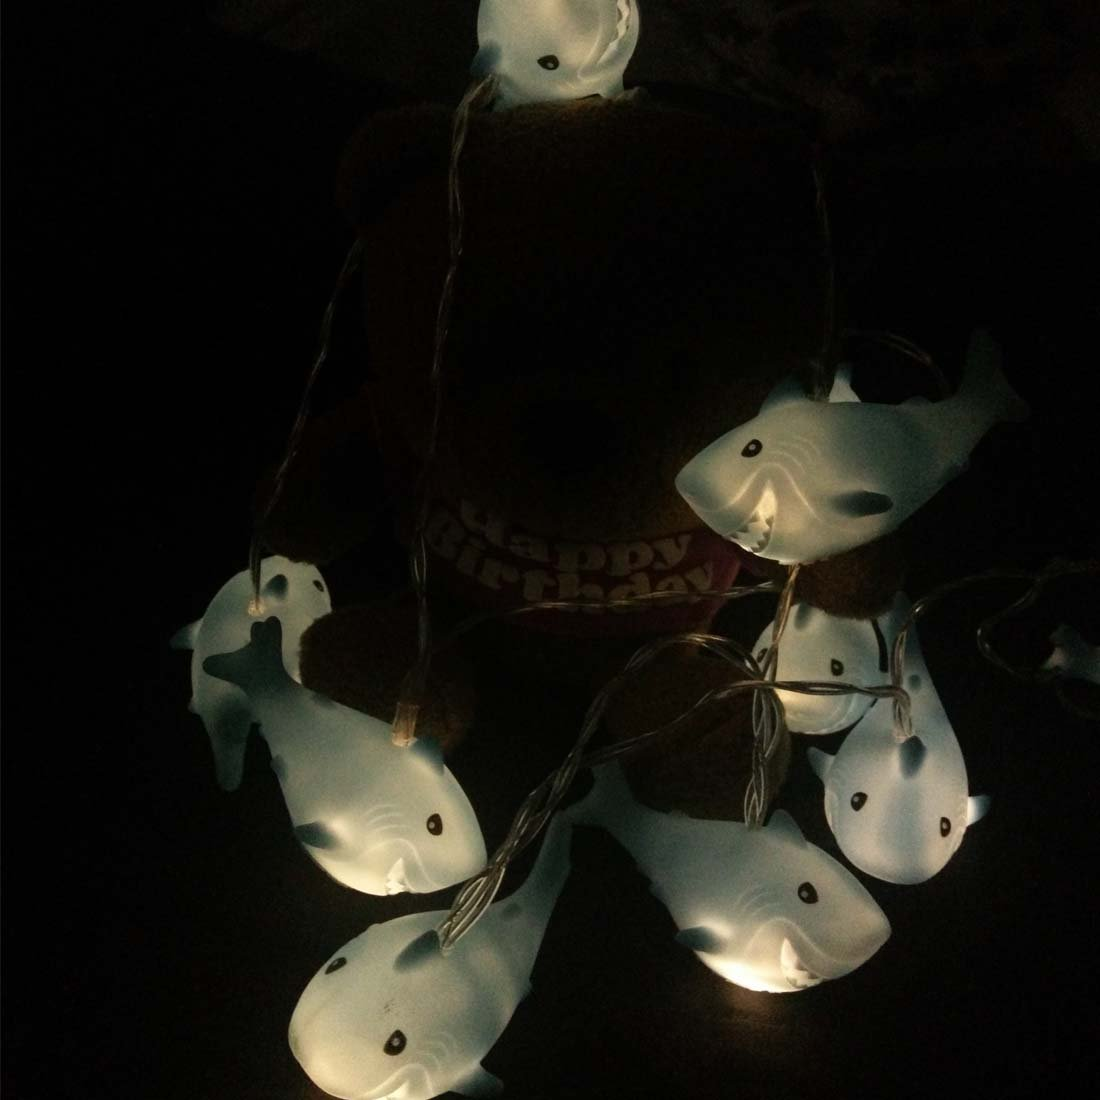 Penfly 1.65m 10LEDs Octopus Shape Decorative Fairy Night Mood Light Romantic Lamp for Home Indoor Bedroom Babyroom Children Wedding Party Festival D/écor Warm White Octopus